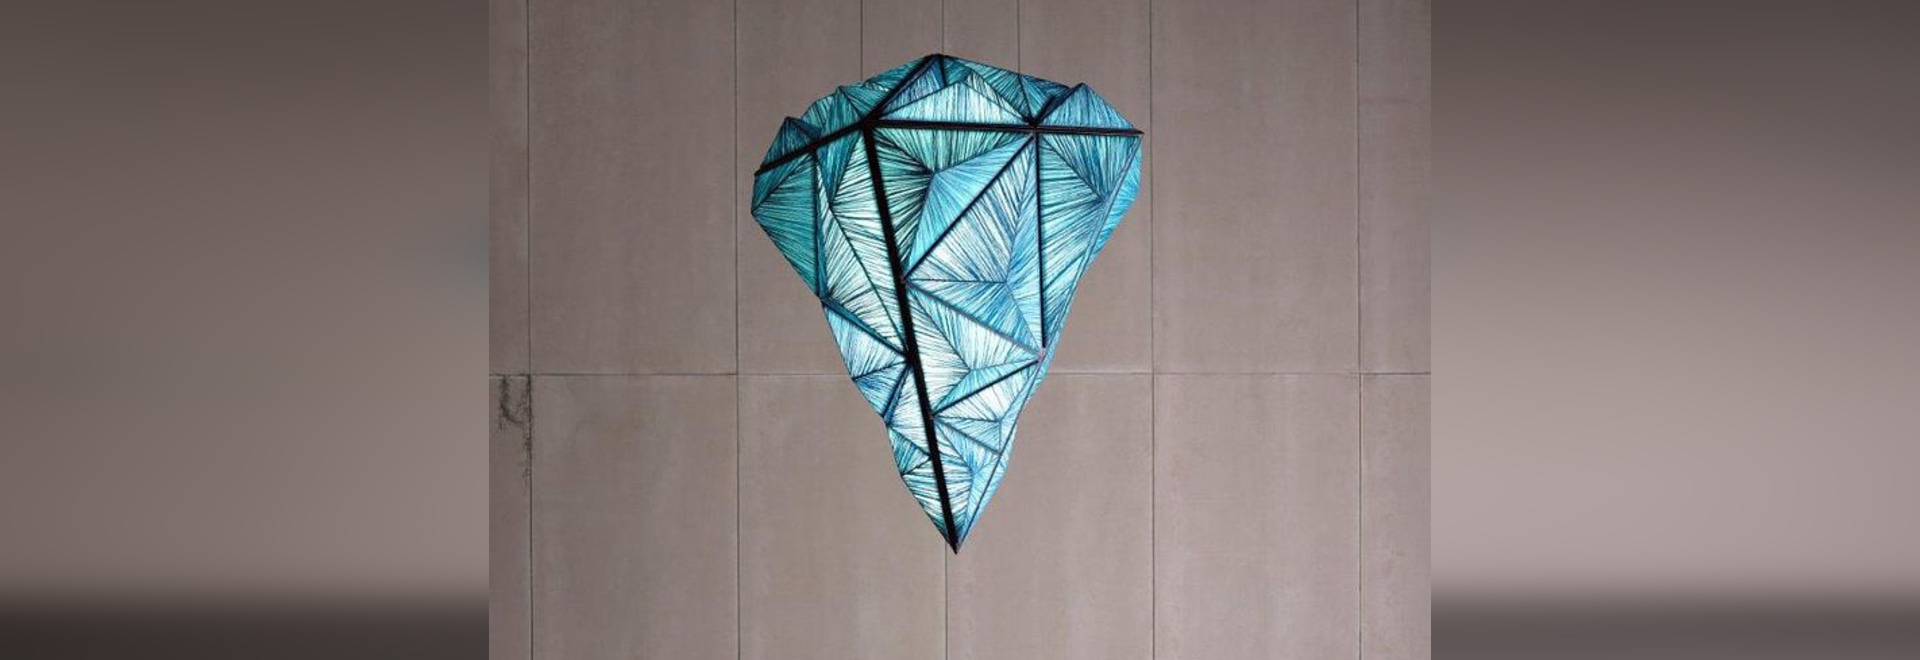 aqua creations lighting. ZOOID DIAMOND By Aqua Creations Lighting U